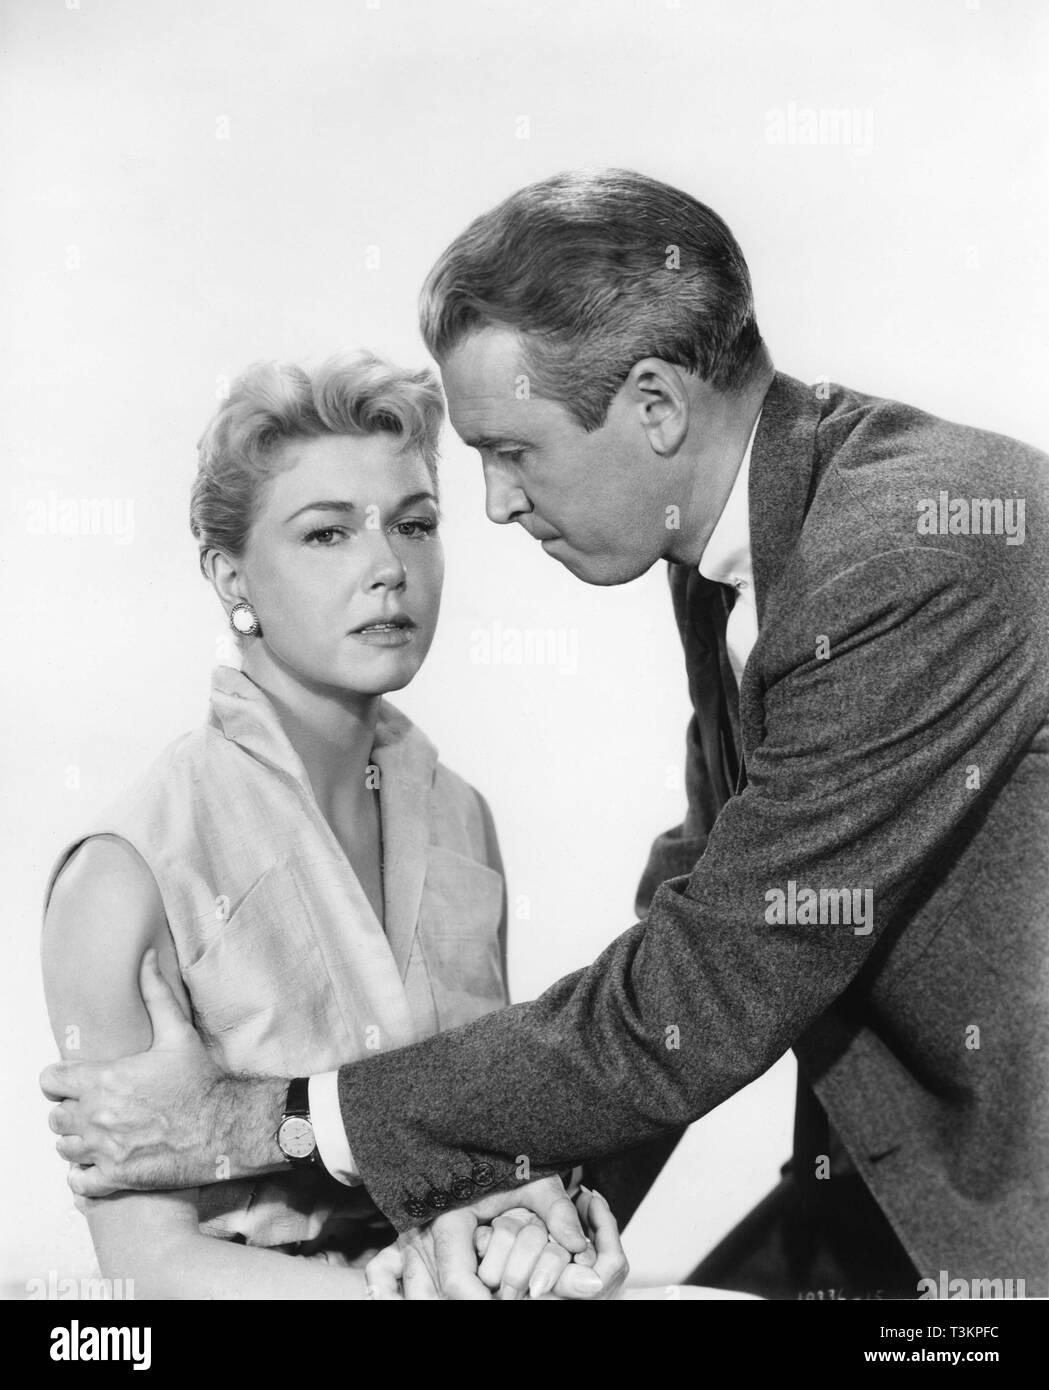 James Stewart Doris Day THE MAN WHO KNEW TOO MUCH 1956 director Alfred Hitchcock music Bernard Herrmann VistaVision Filwite Productions / Paramount Pictures - Stock Image